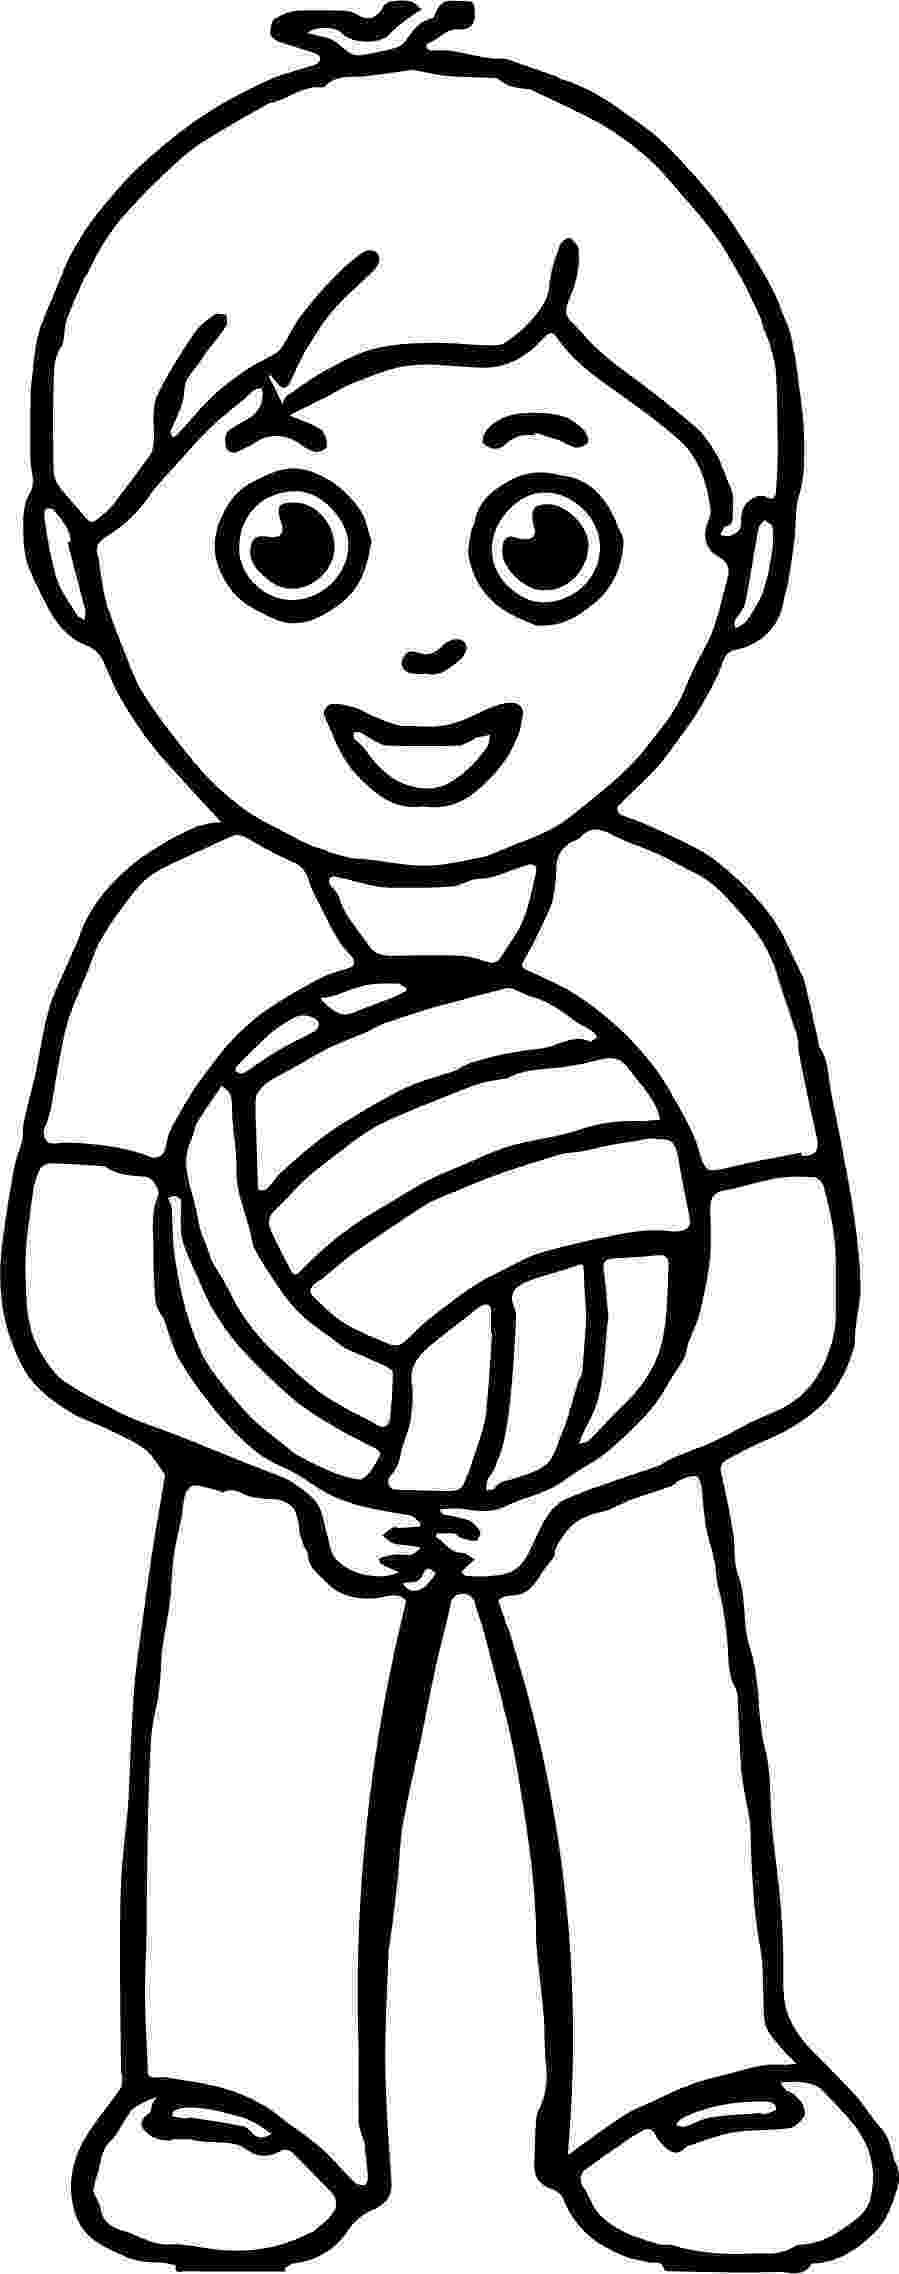 coloring pages volleyball 73 best sports coloring pages images on pinterest volleyball coloring pages